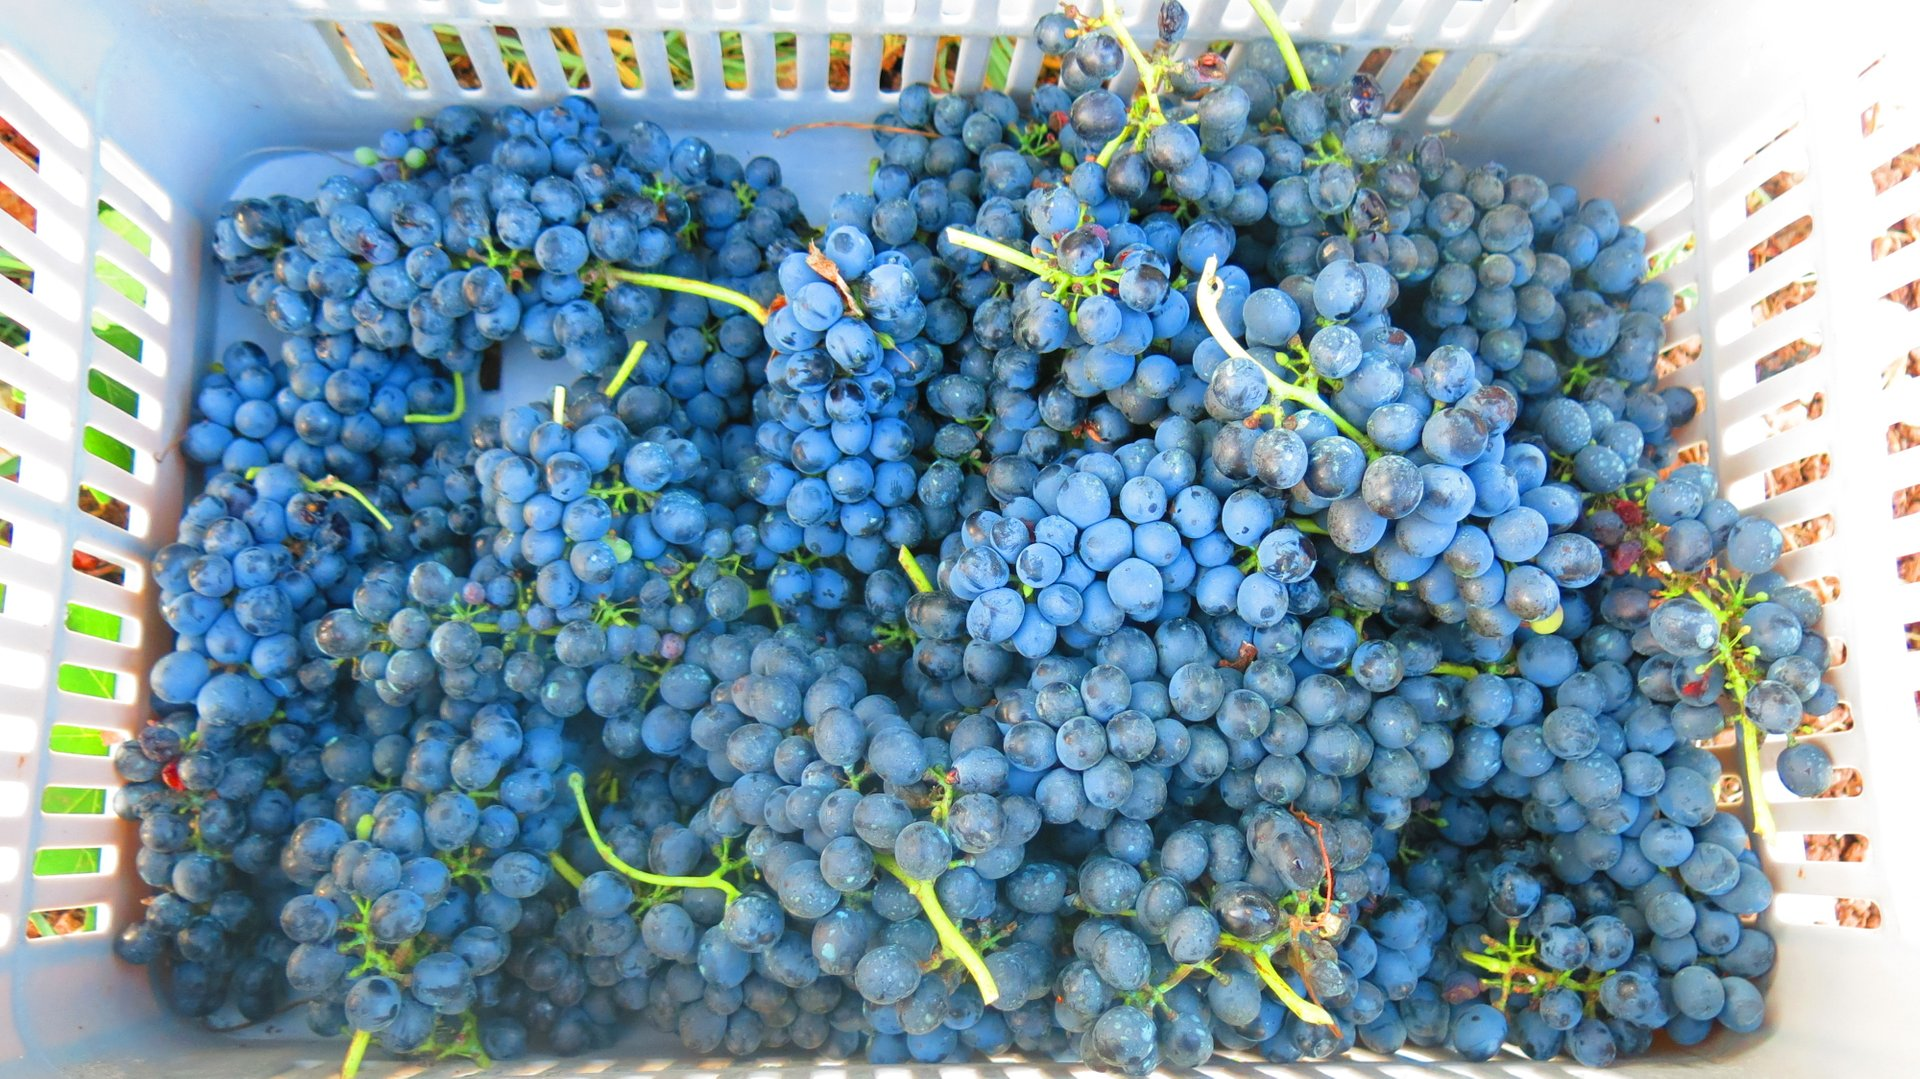 Grape Harvest in Cyprus 2019 - Best Time